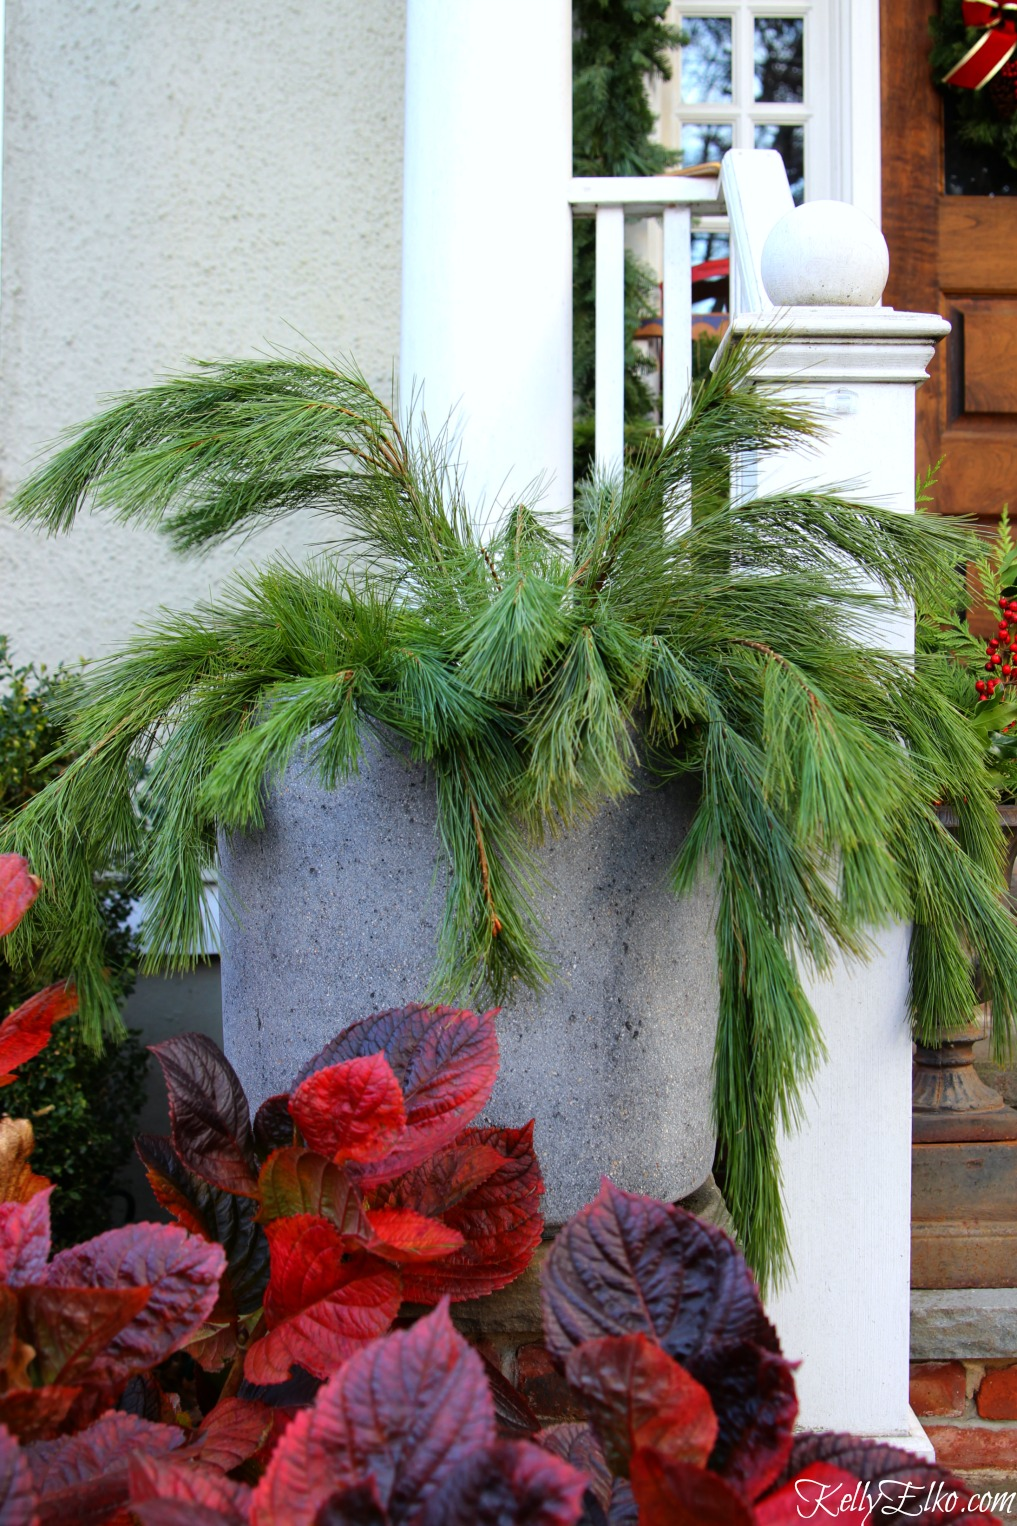 Love this Christmas front porch with planters filled with fresh greens kellyelko.com